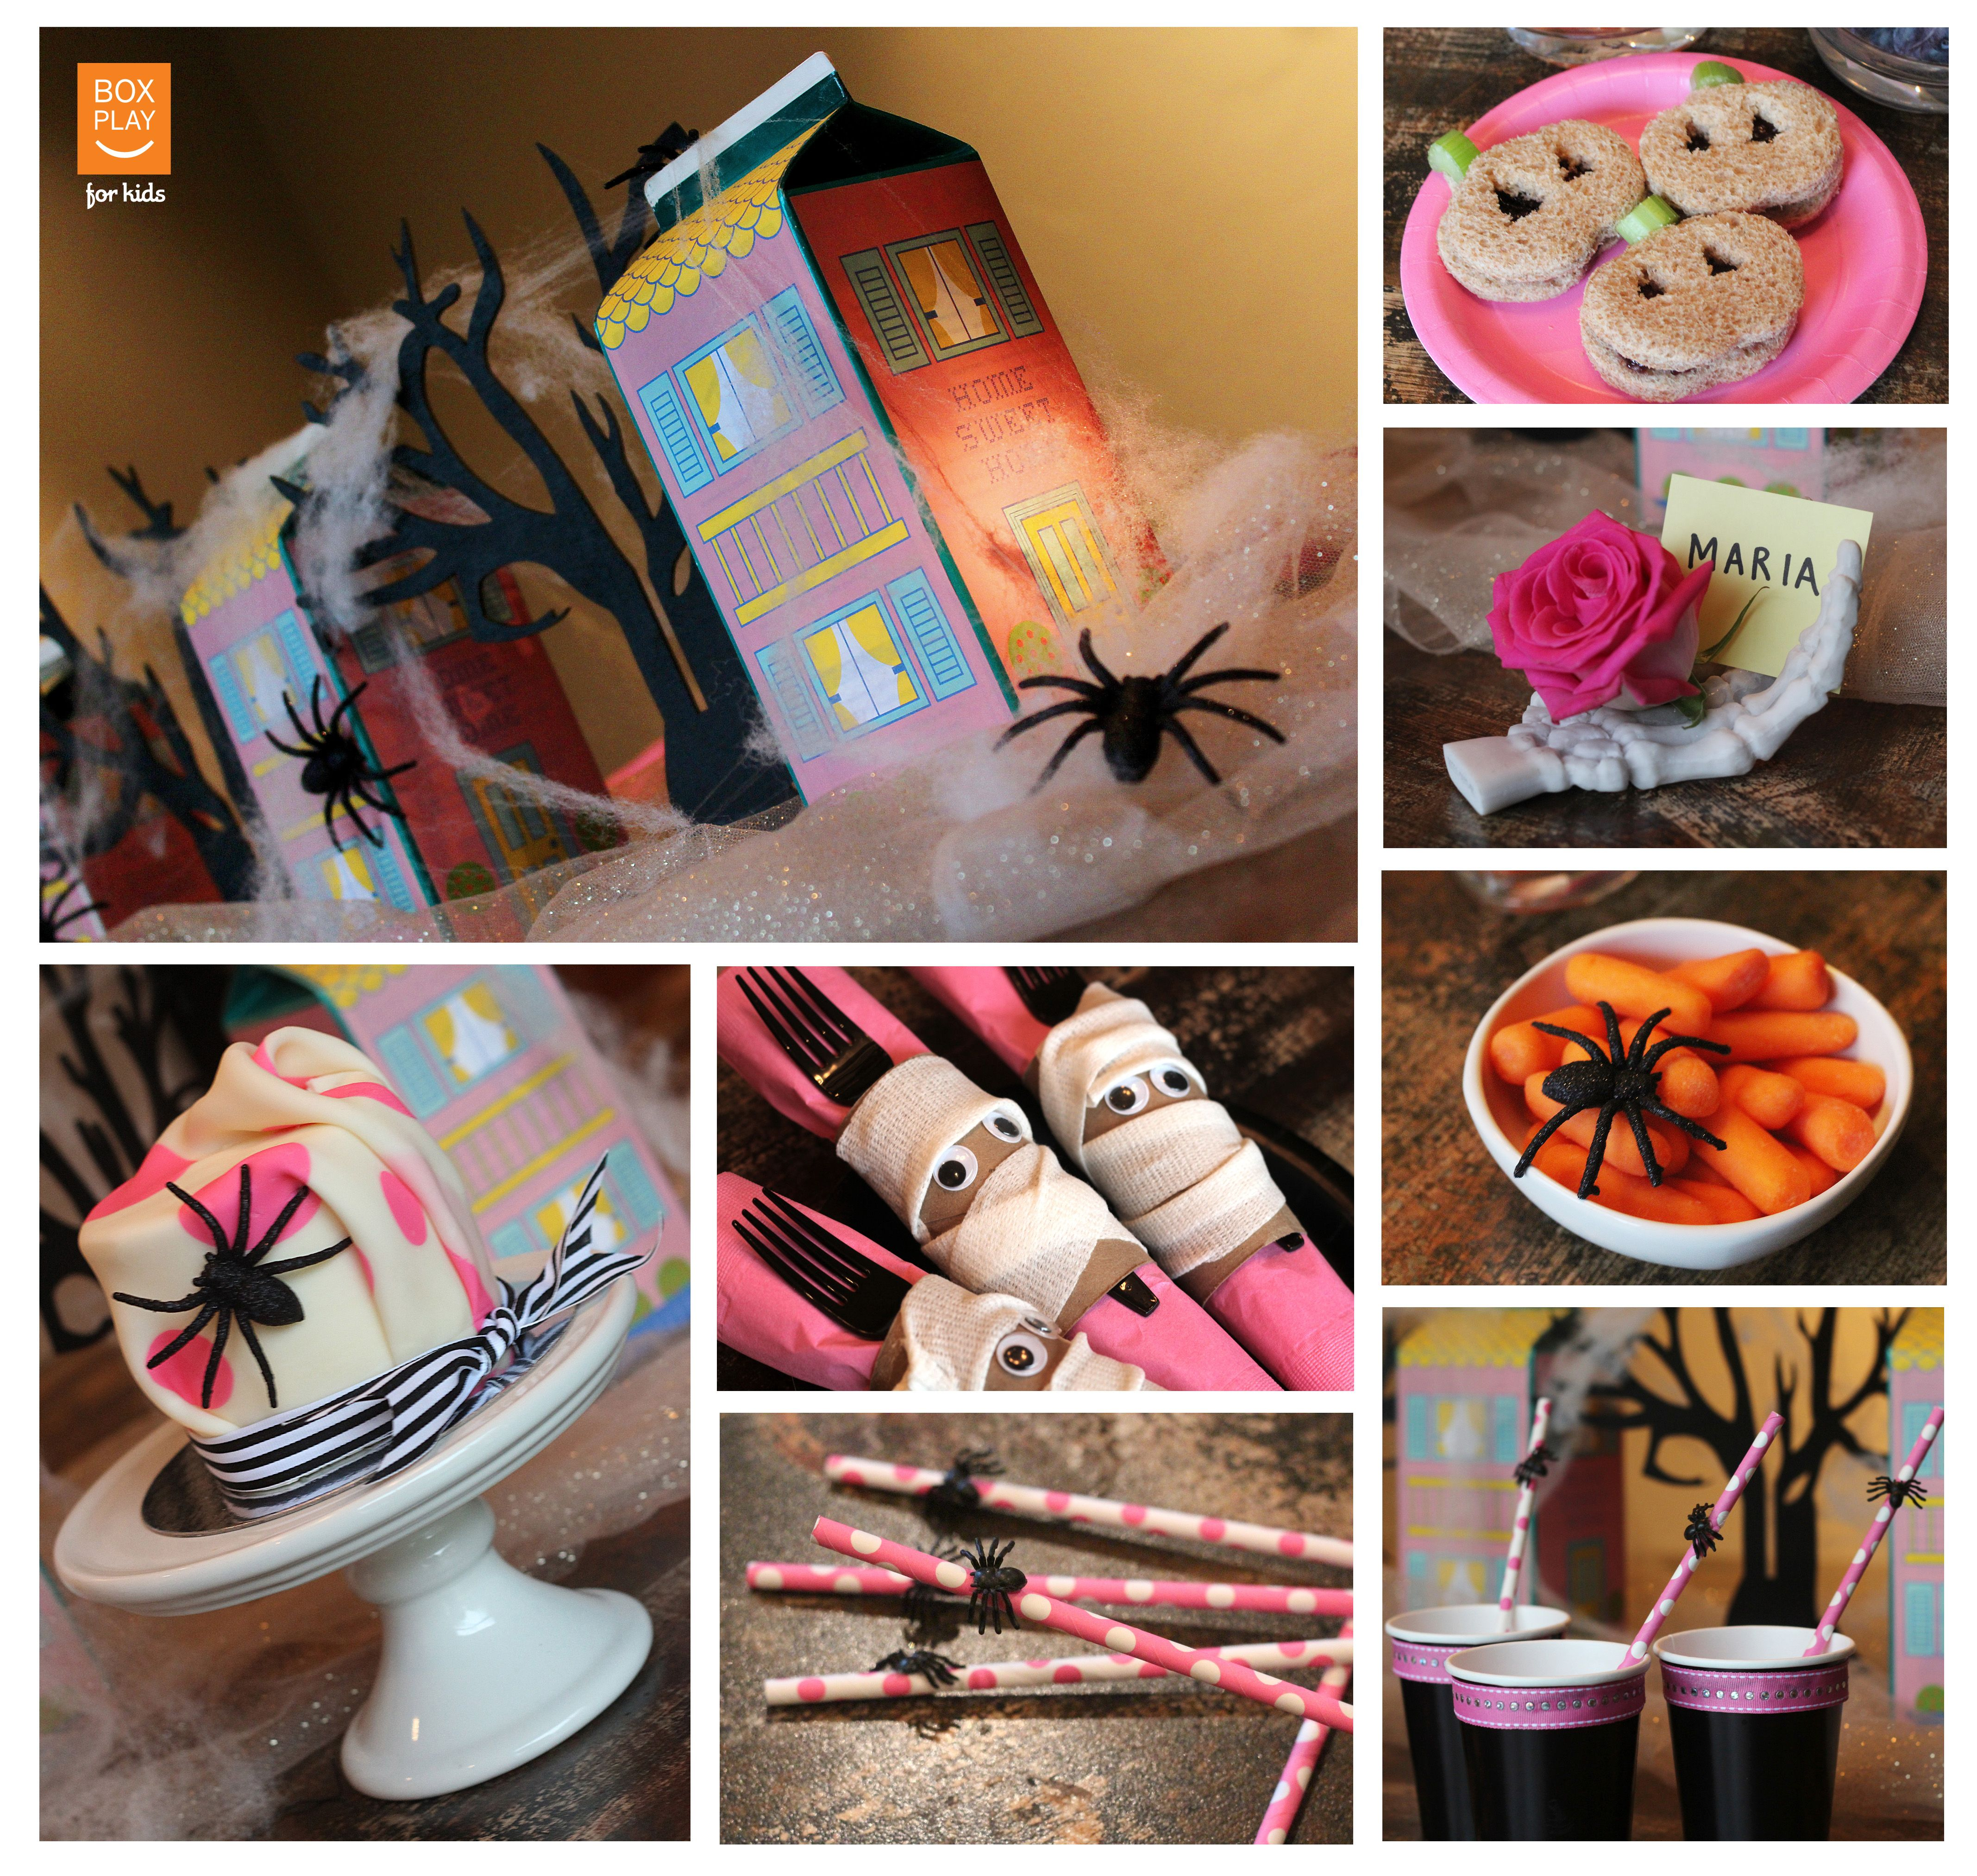 Box Play for Kids Halloween Party Idea: Ghoulish Girly-Girl Party ...